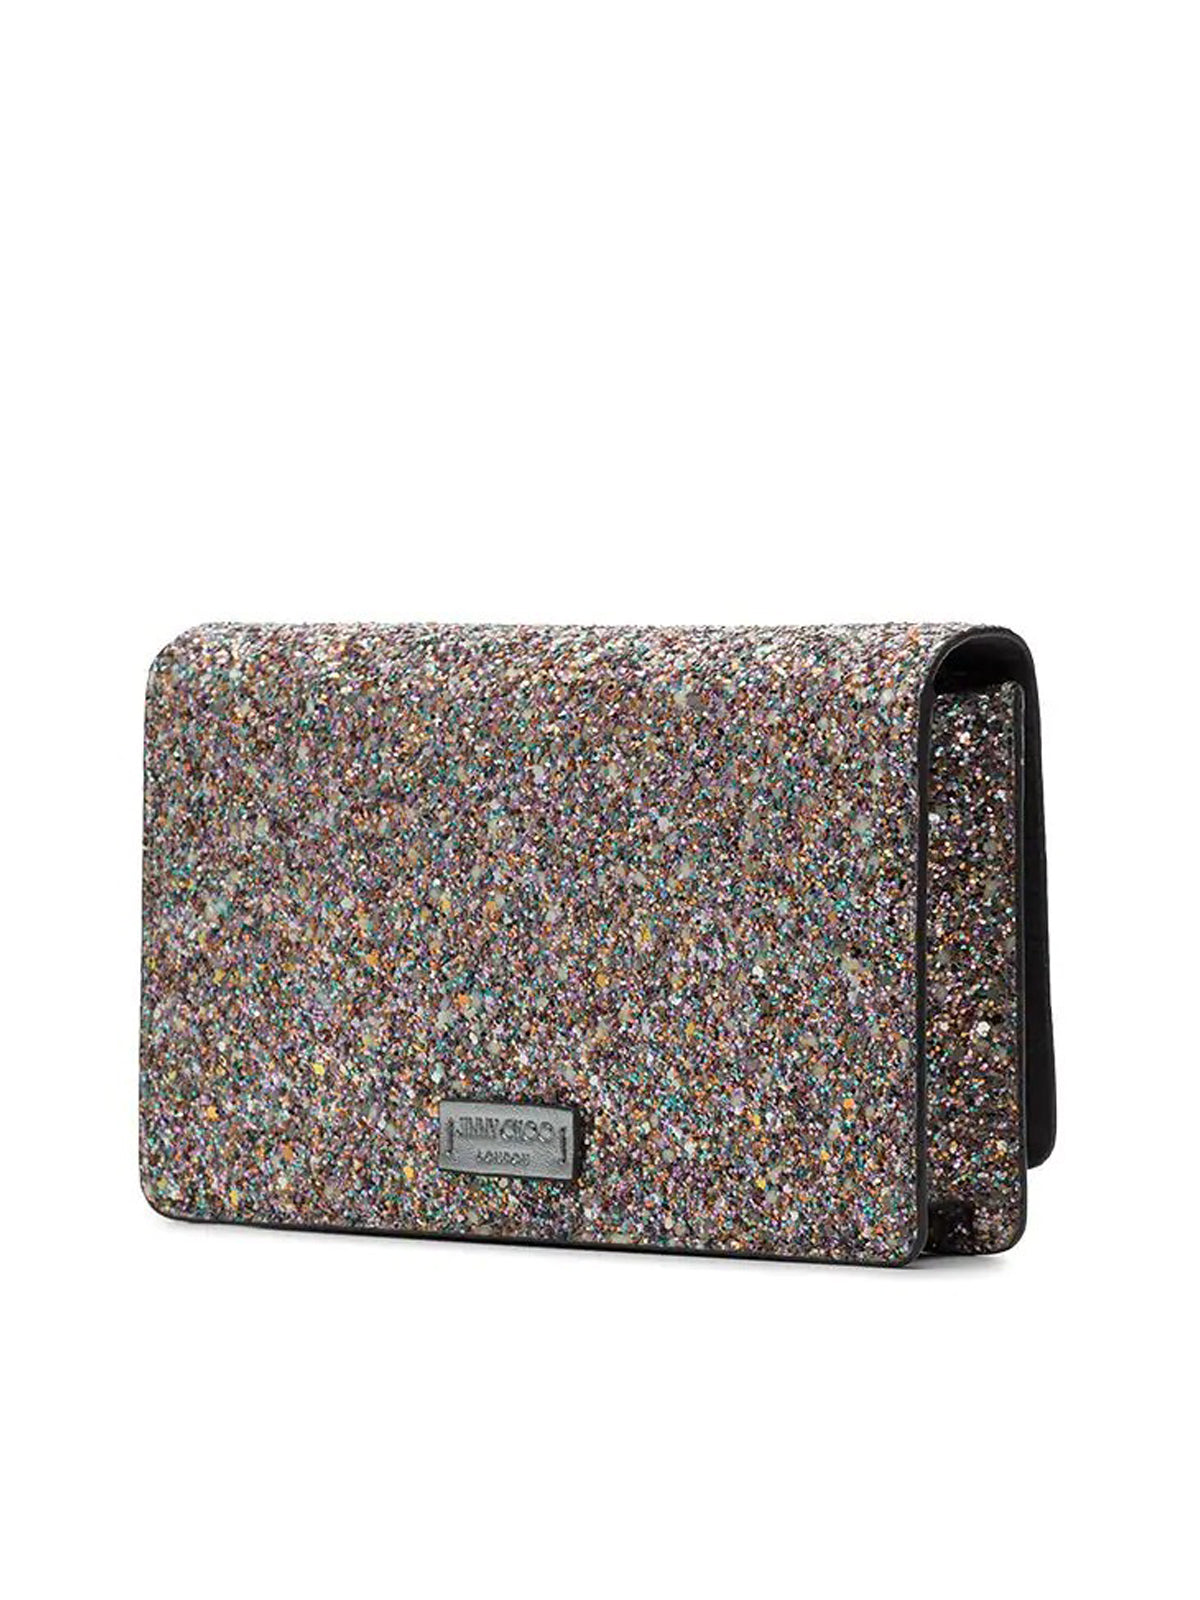 Palace shoulder bag with glitter